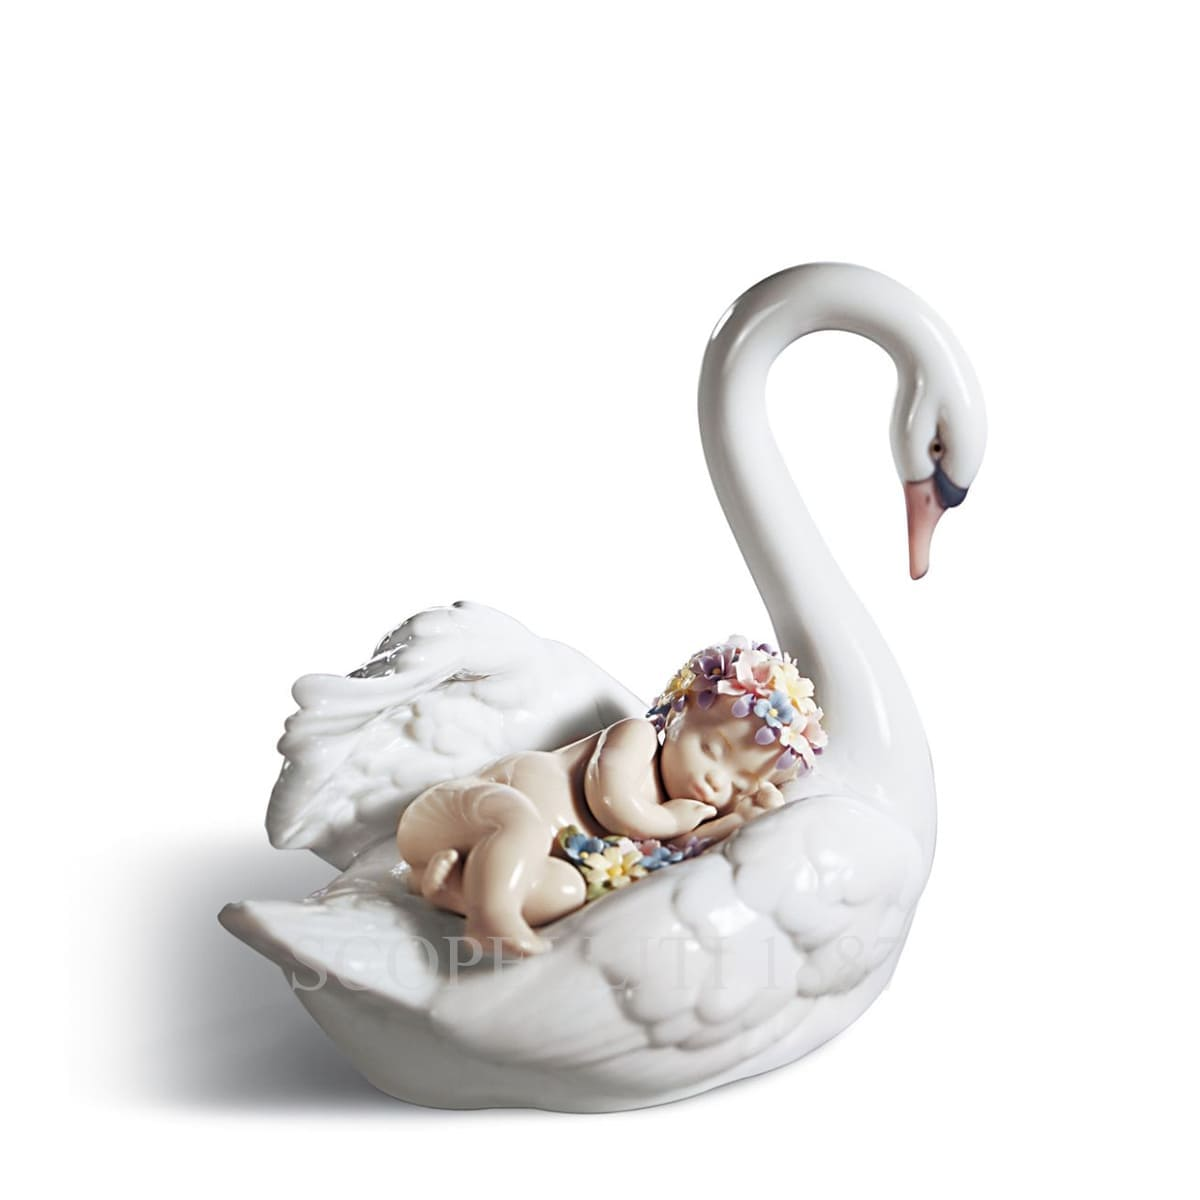 lladro drifting through dreamland porcelain figurine spanish designer